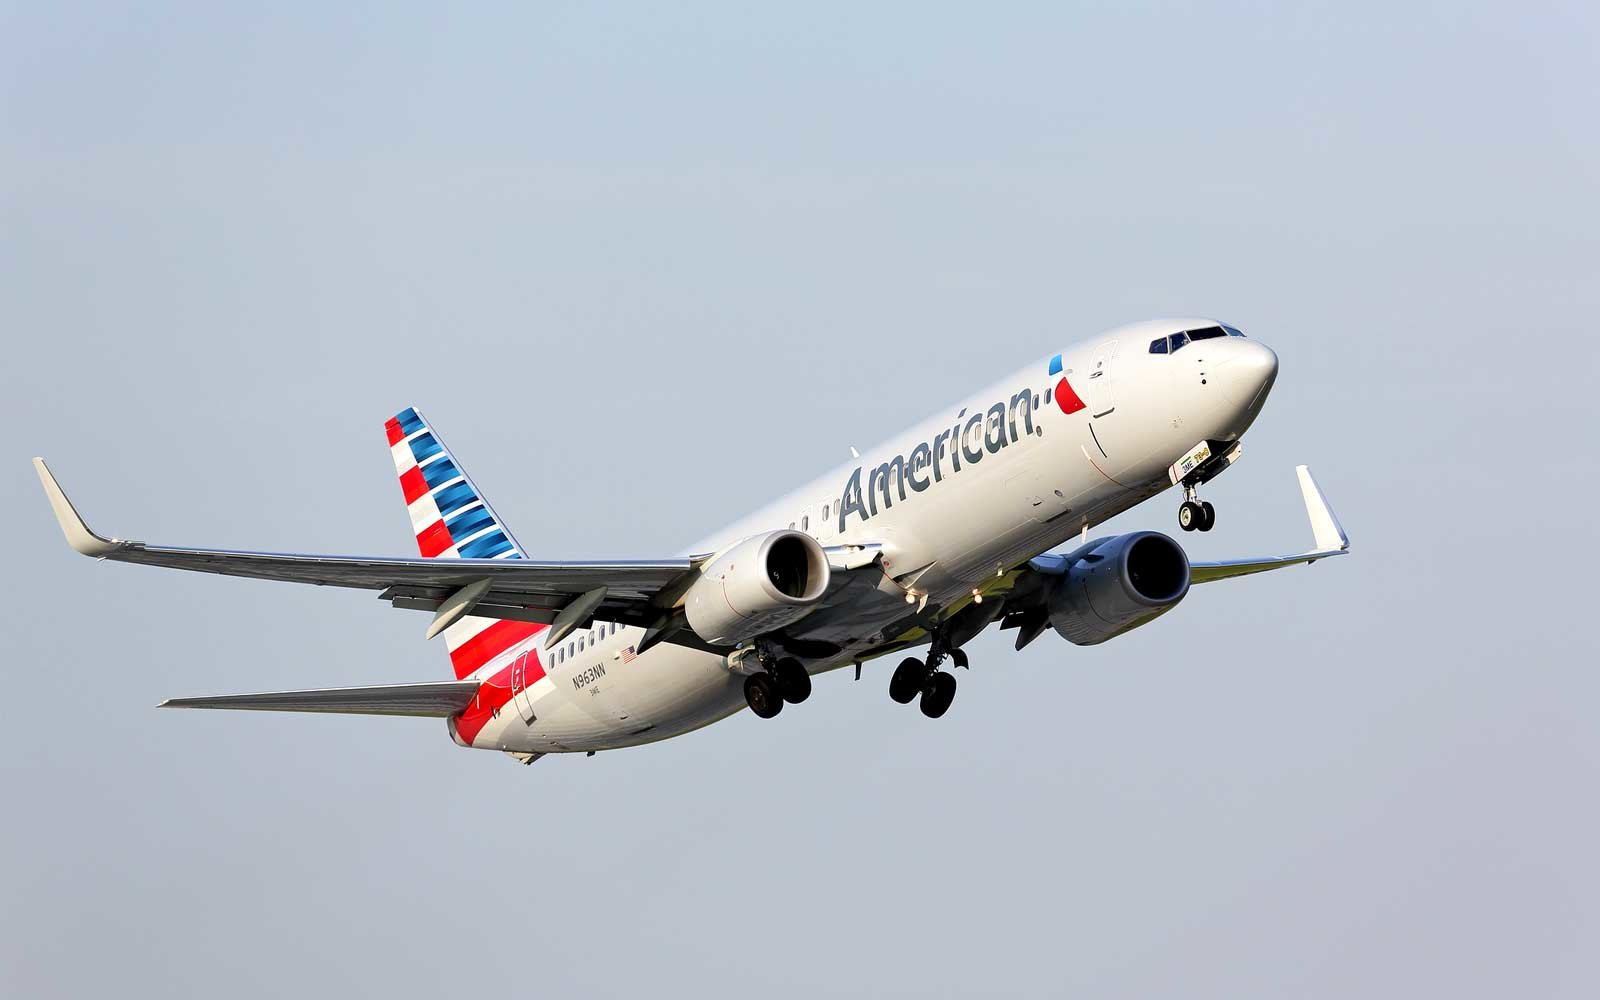 American Airlines grounds 14 planes to fix overhead bins